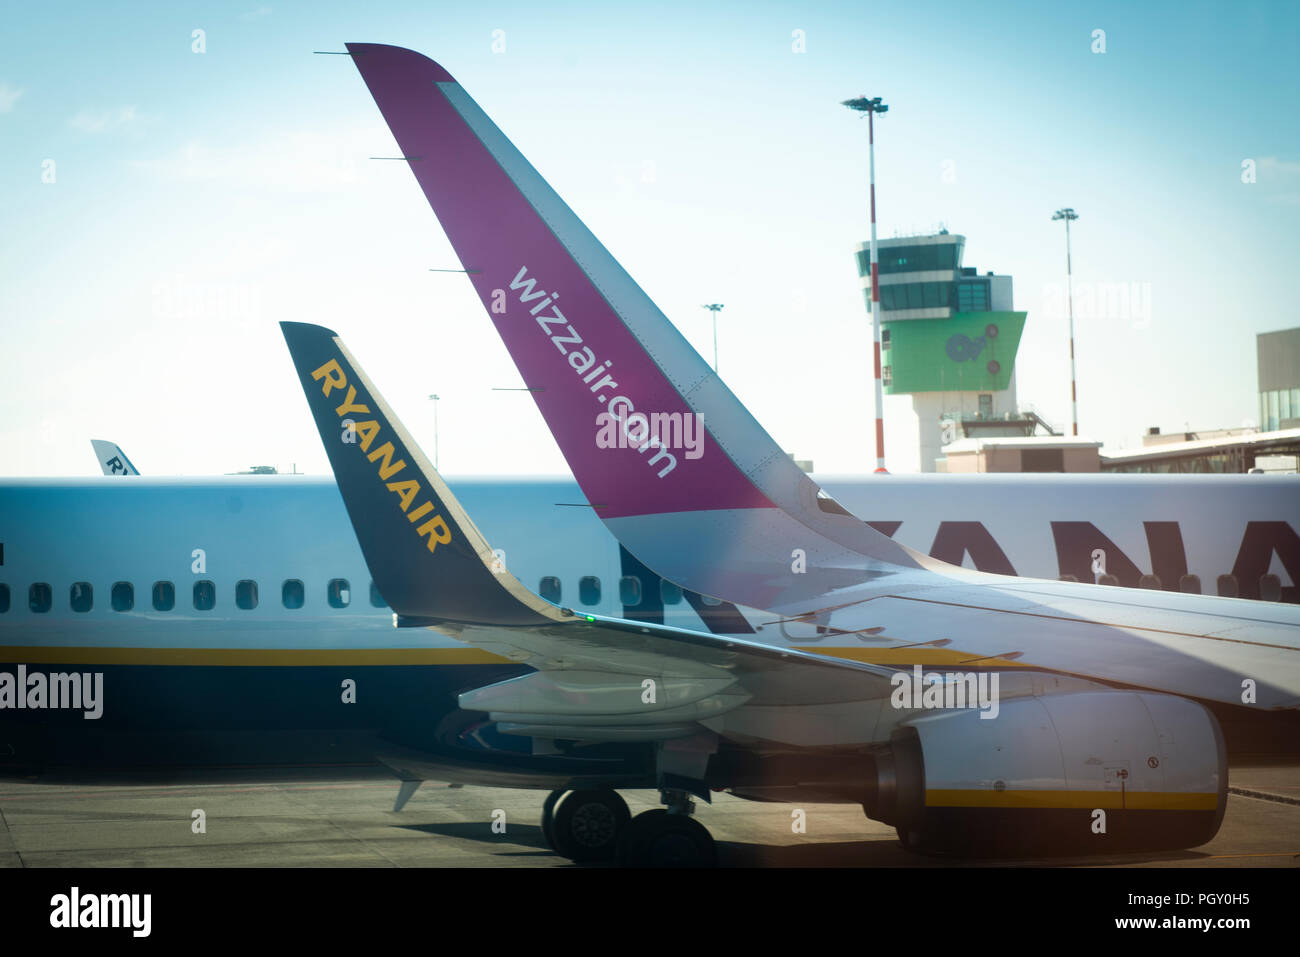 Ryanair and Wizzair winglets are seen on Boeing 737 airliners at Bergamo airport in Italy. - Stock Image